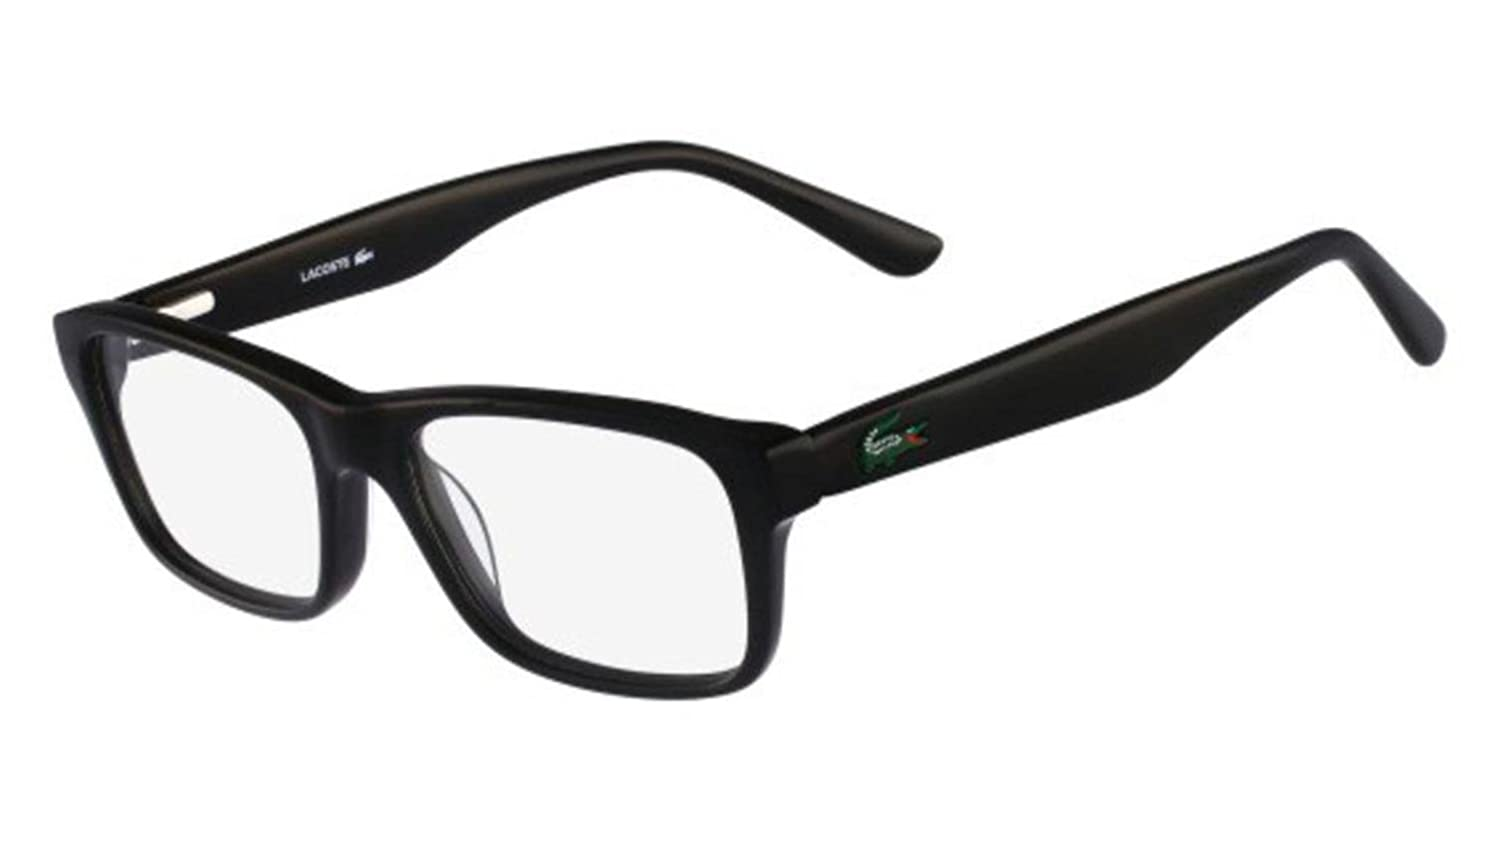 Amazon.com: anteojos Lacoste L 3612 001 negro: Clothing